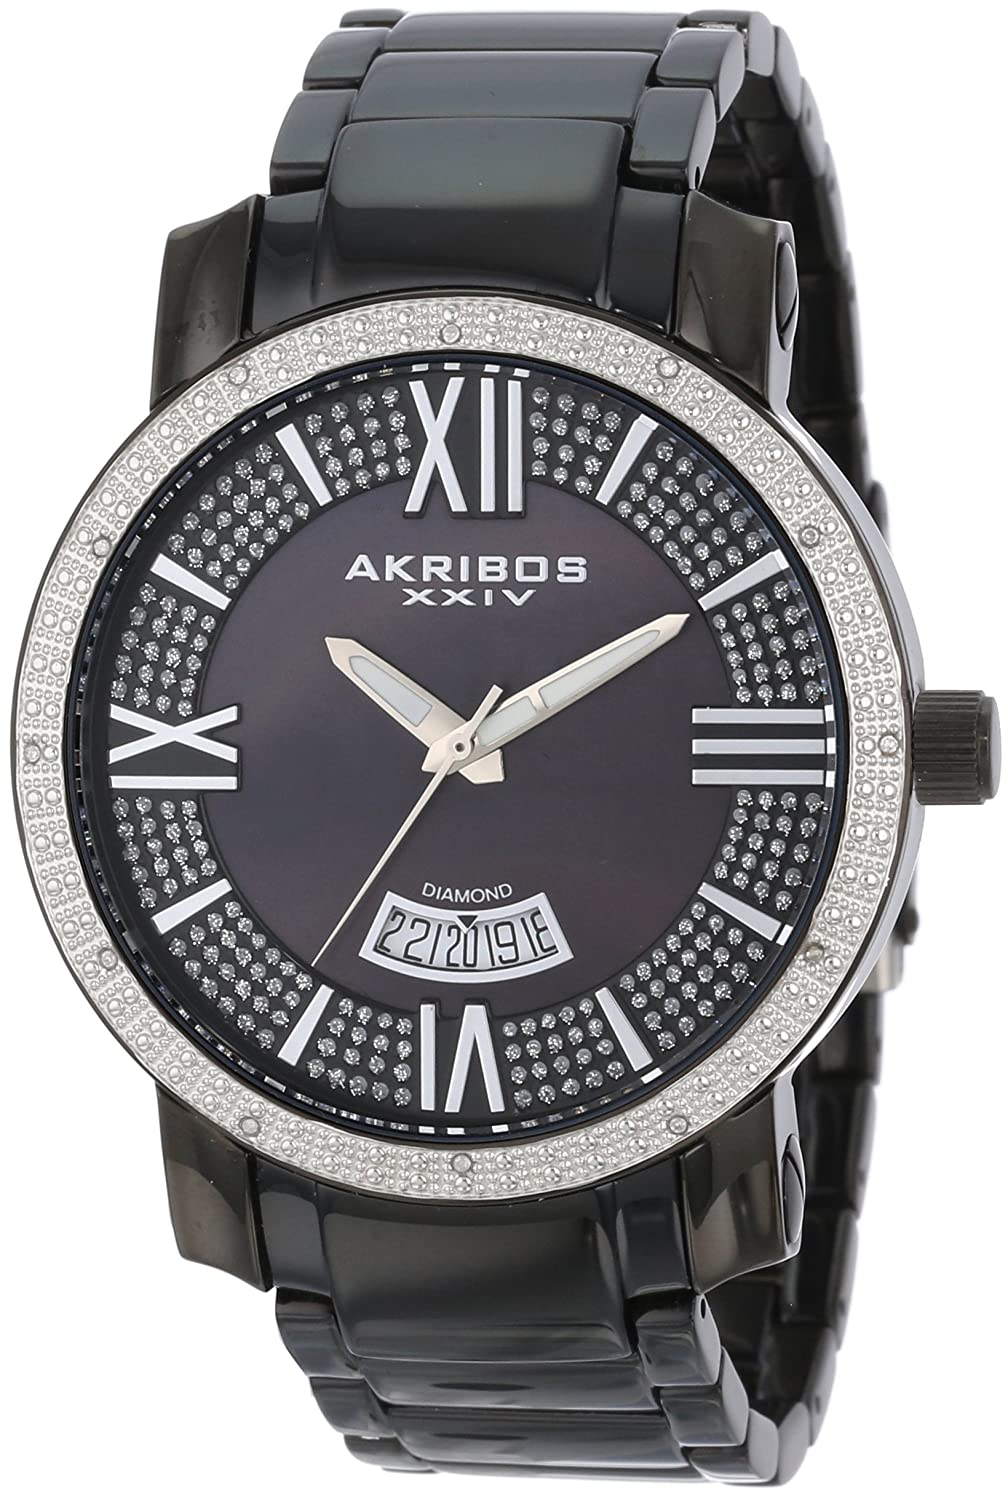 Amazon.com: Akribos XXIV Womens AK510SS Mesh Wraparound Diamond-Accented Rectangular Watch: Akribos XXIV: Watches